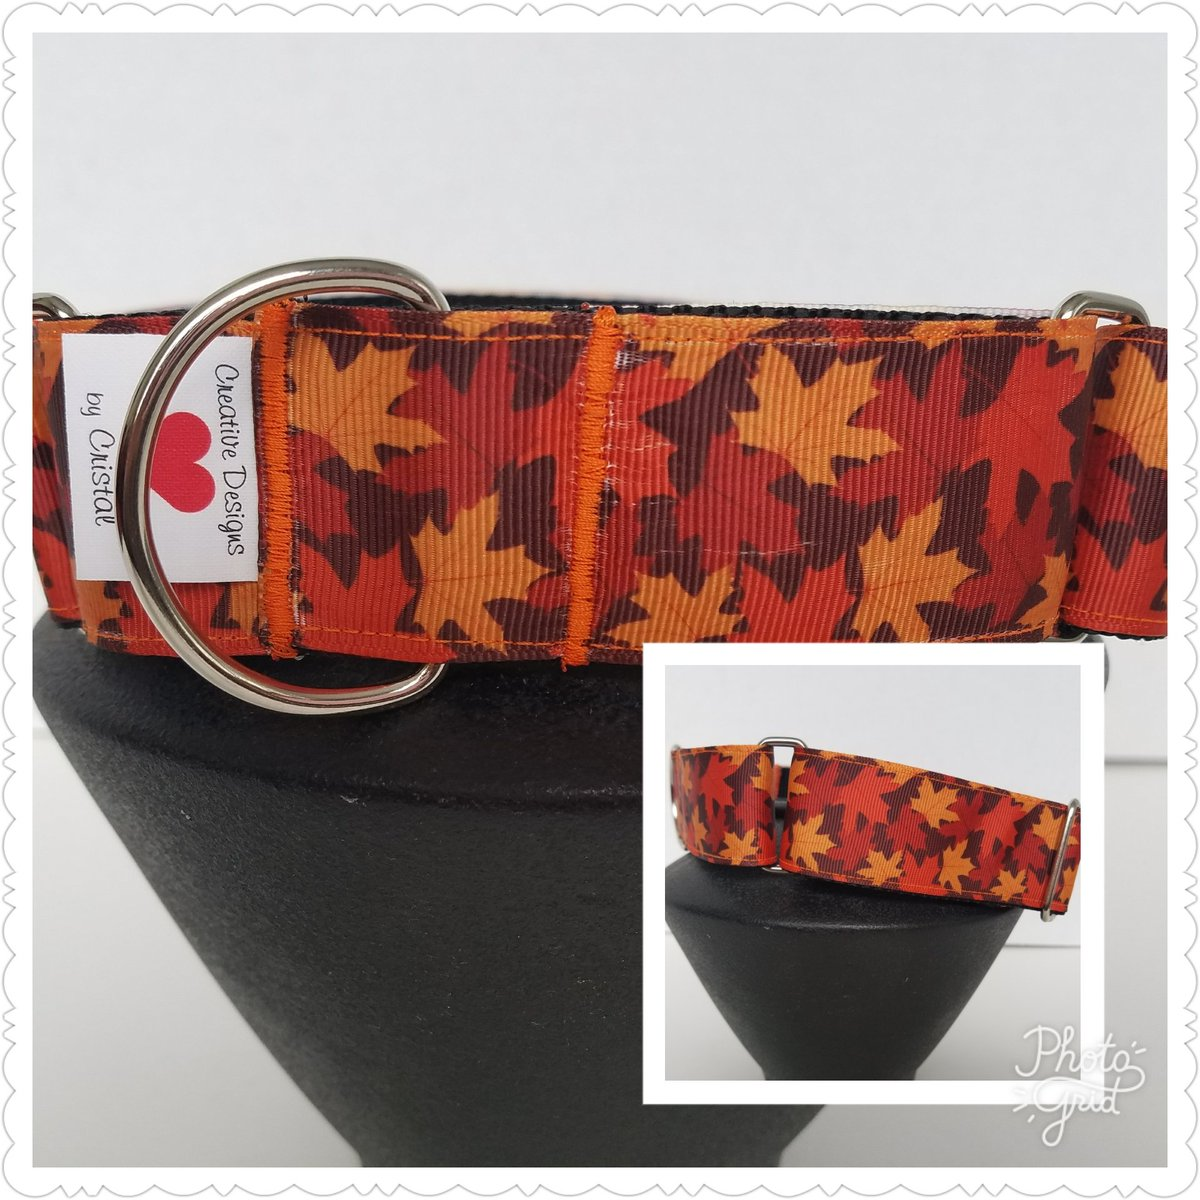 #epiconetsy #etsychaching #Fall #Martingale #dog collars #doglover #petlover #dogsoftwitter #dogmom #AutumnEquinox  http:// Designsbycristal.etsy.com  &nbsp;  <br>http://pic.twitter.com/CggOVLA7wY